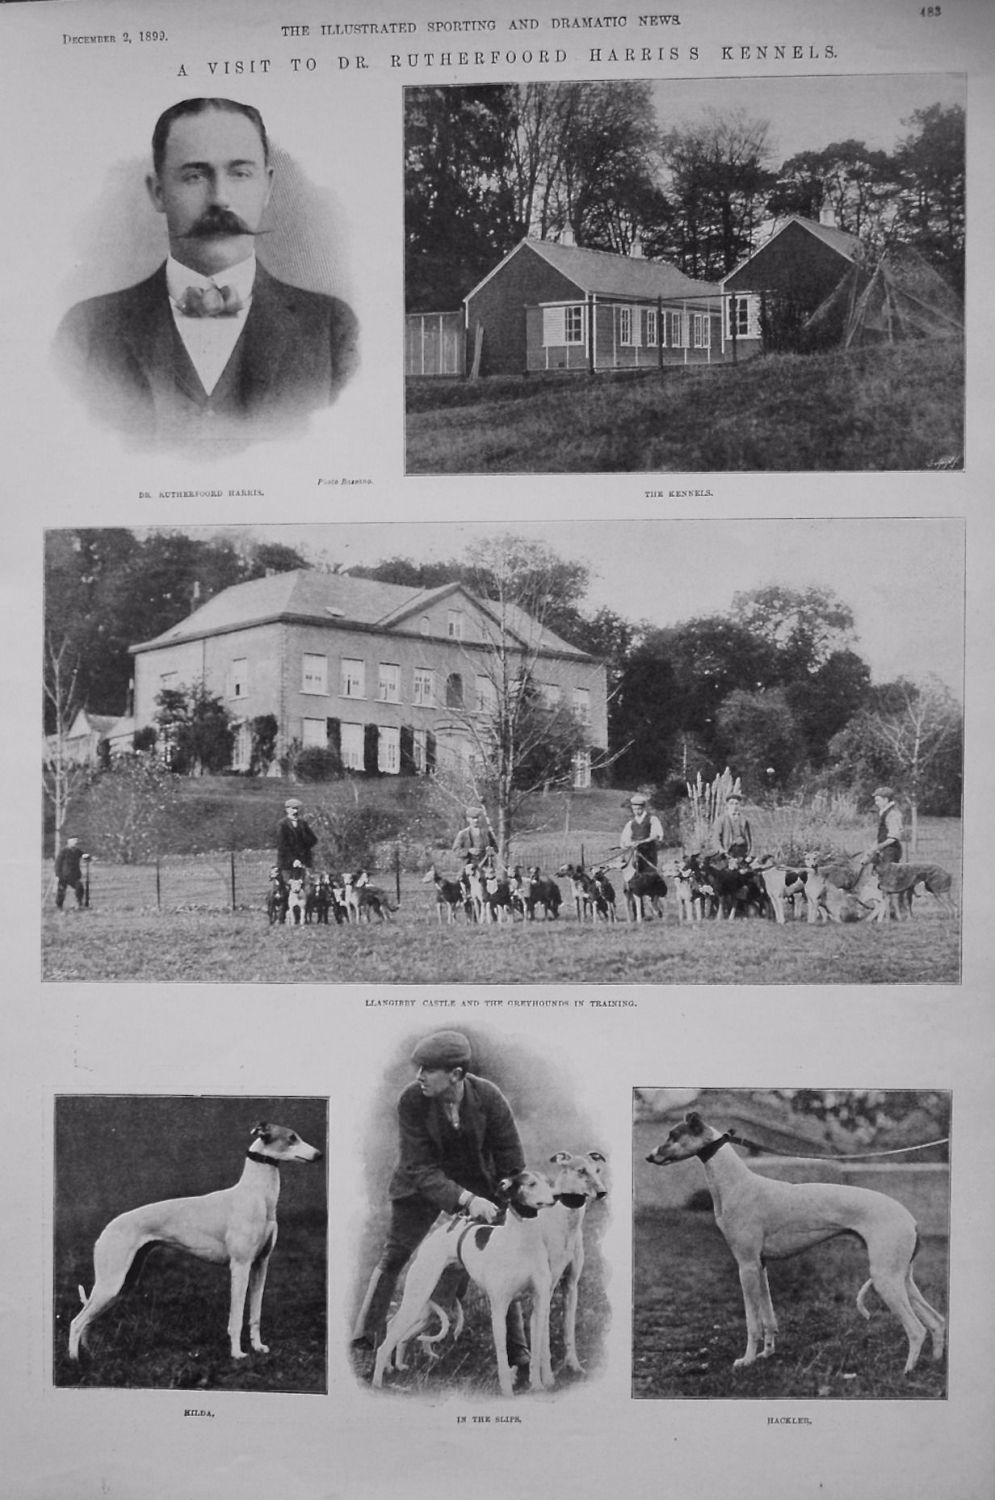 A Visit to Dr. Rutherford Harris's Kennels. 1899